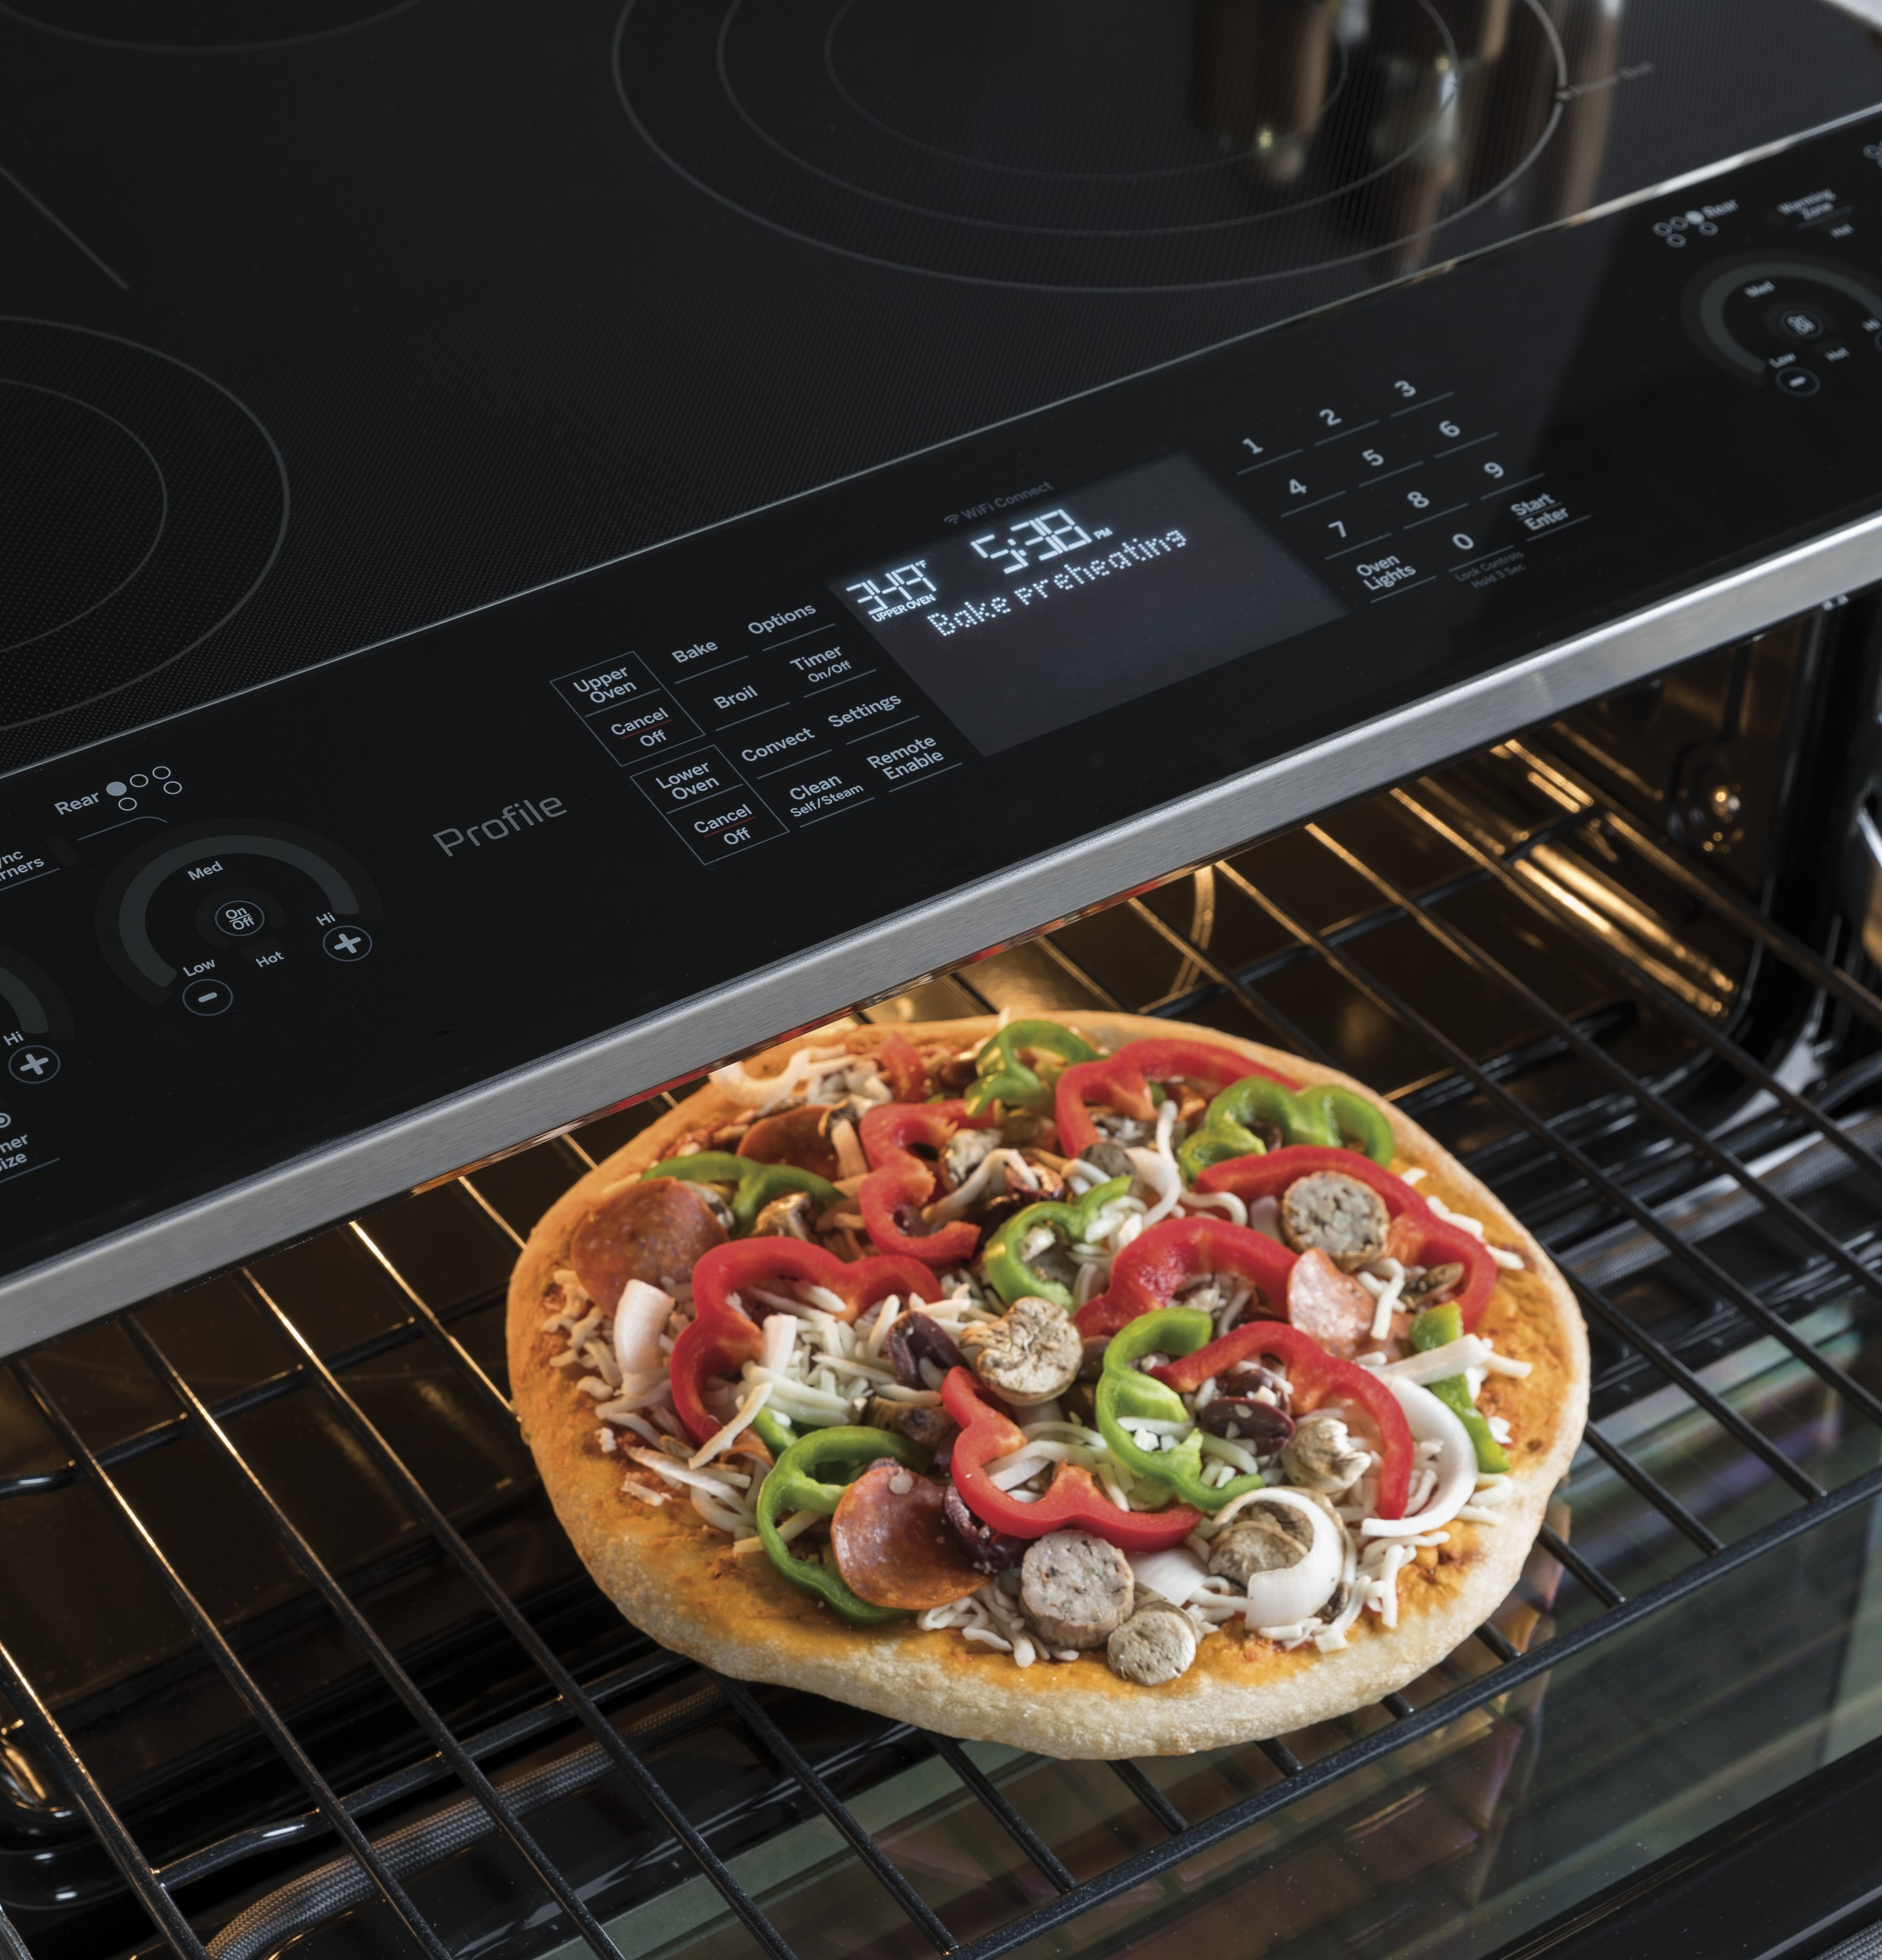 """Model: PS960ELES   GE Profile GE Profile™ Series 30"""" Slide-In Electric Double Oven Convection Range"""